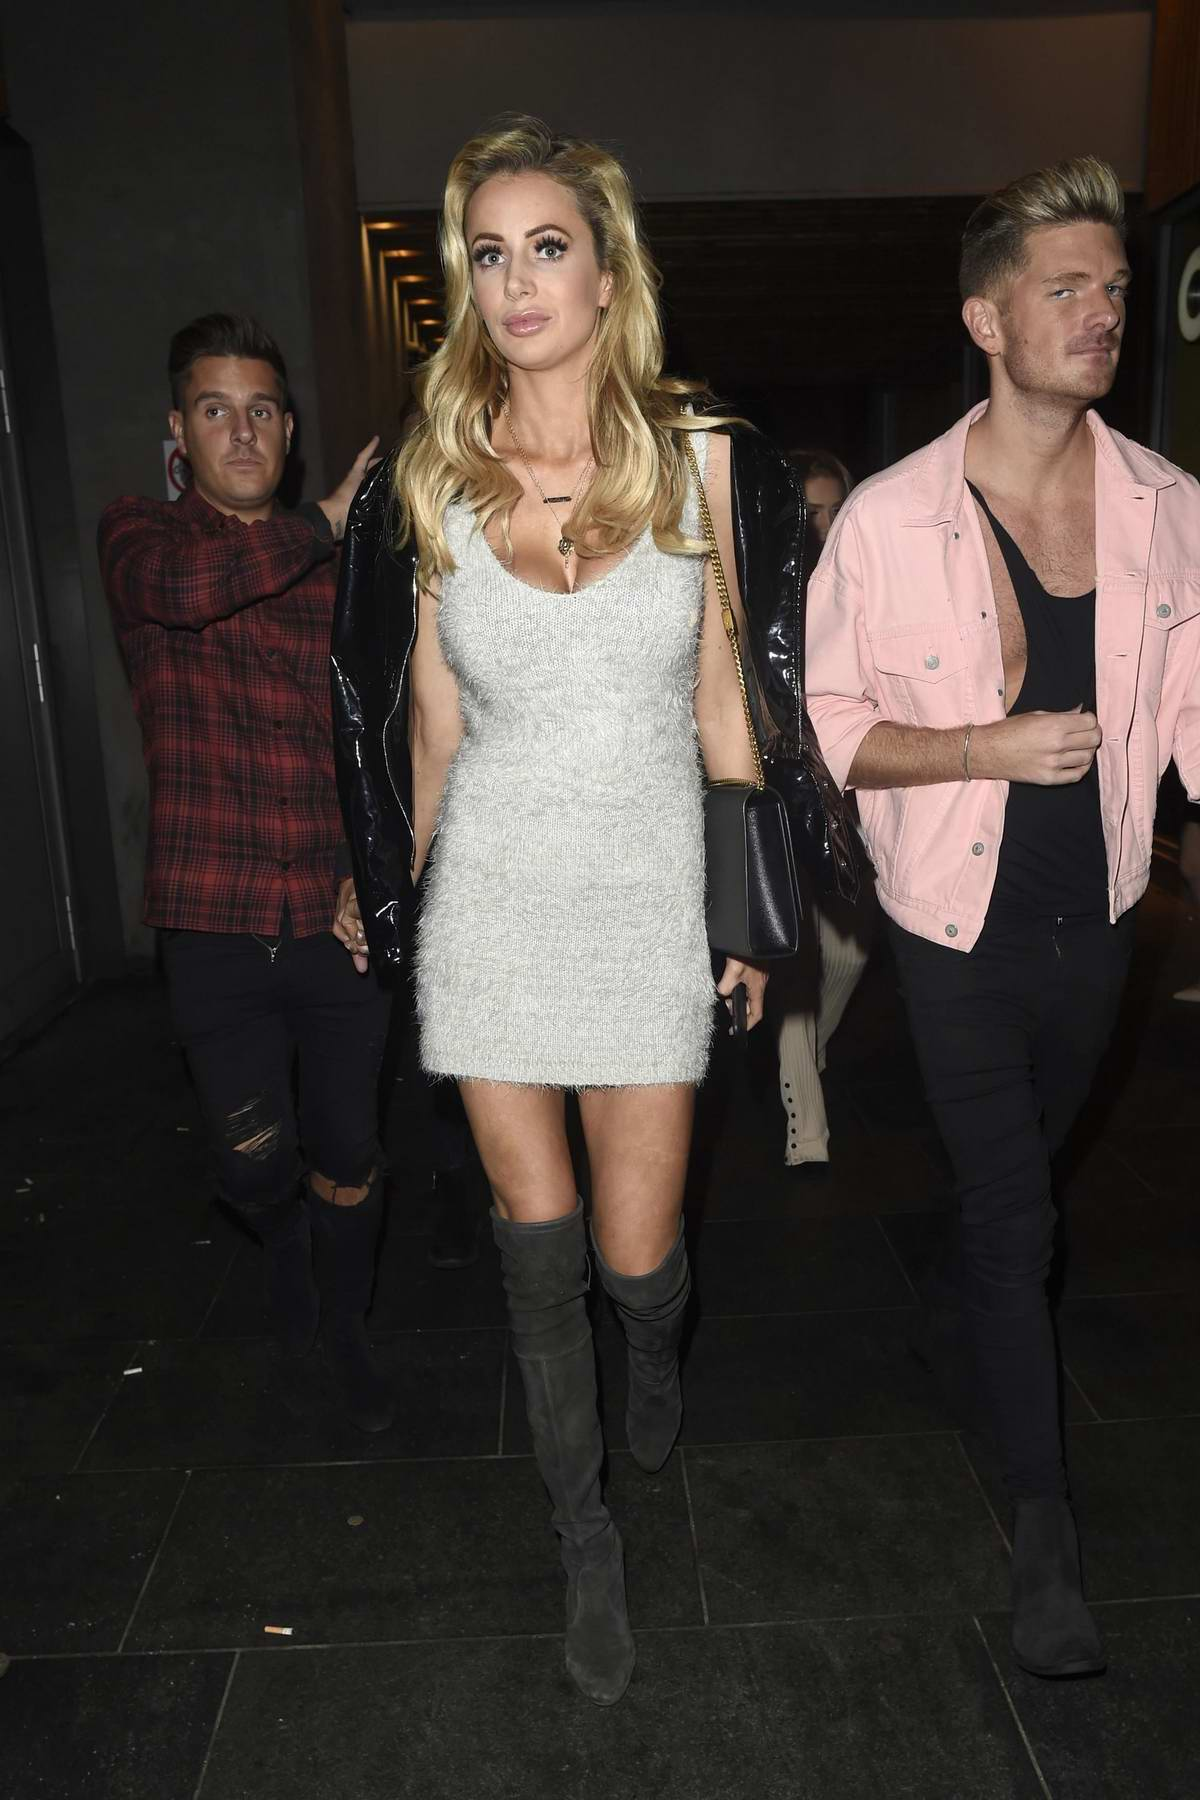 Olivia Attwood enjoying a night out at Neighbourhood Bar and Restaurant in Manchester, UK